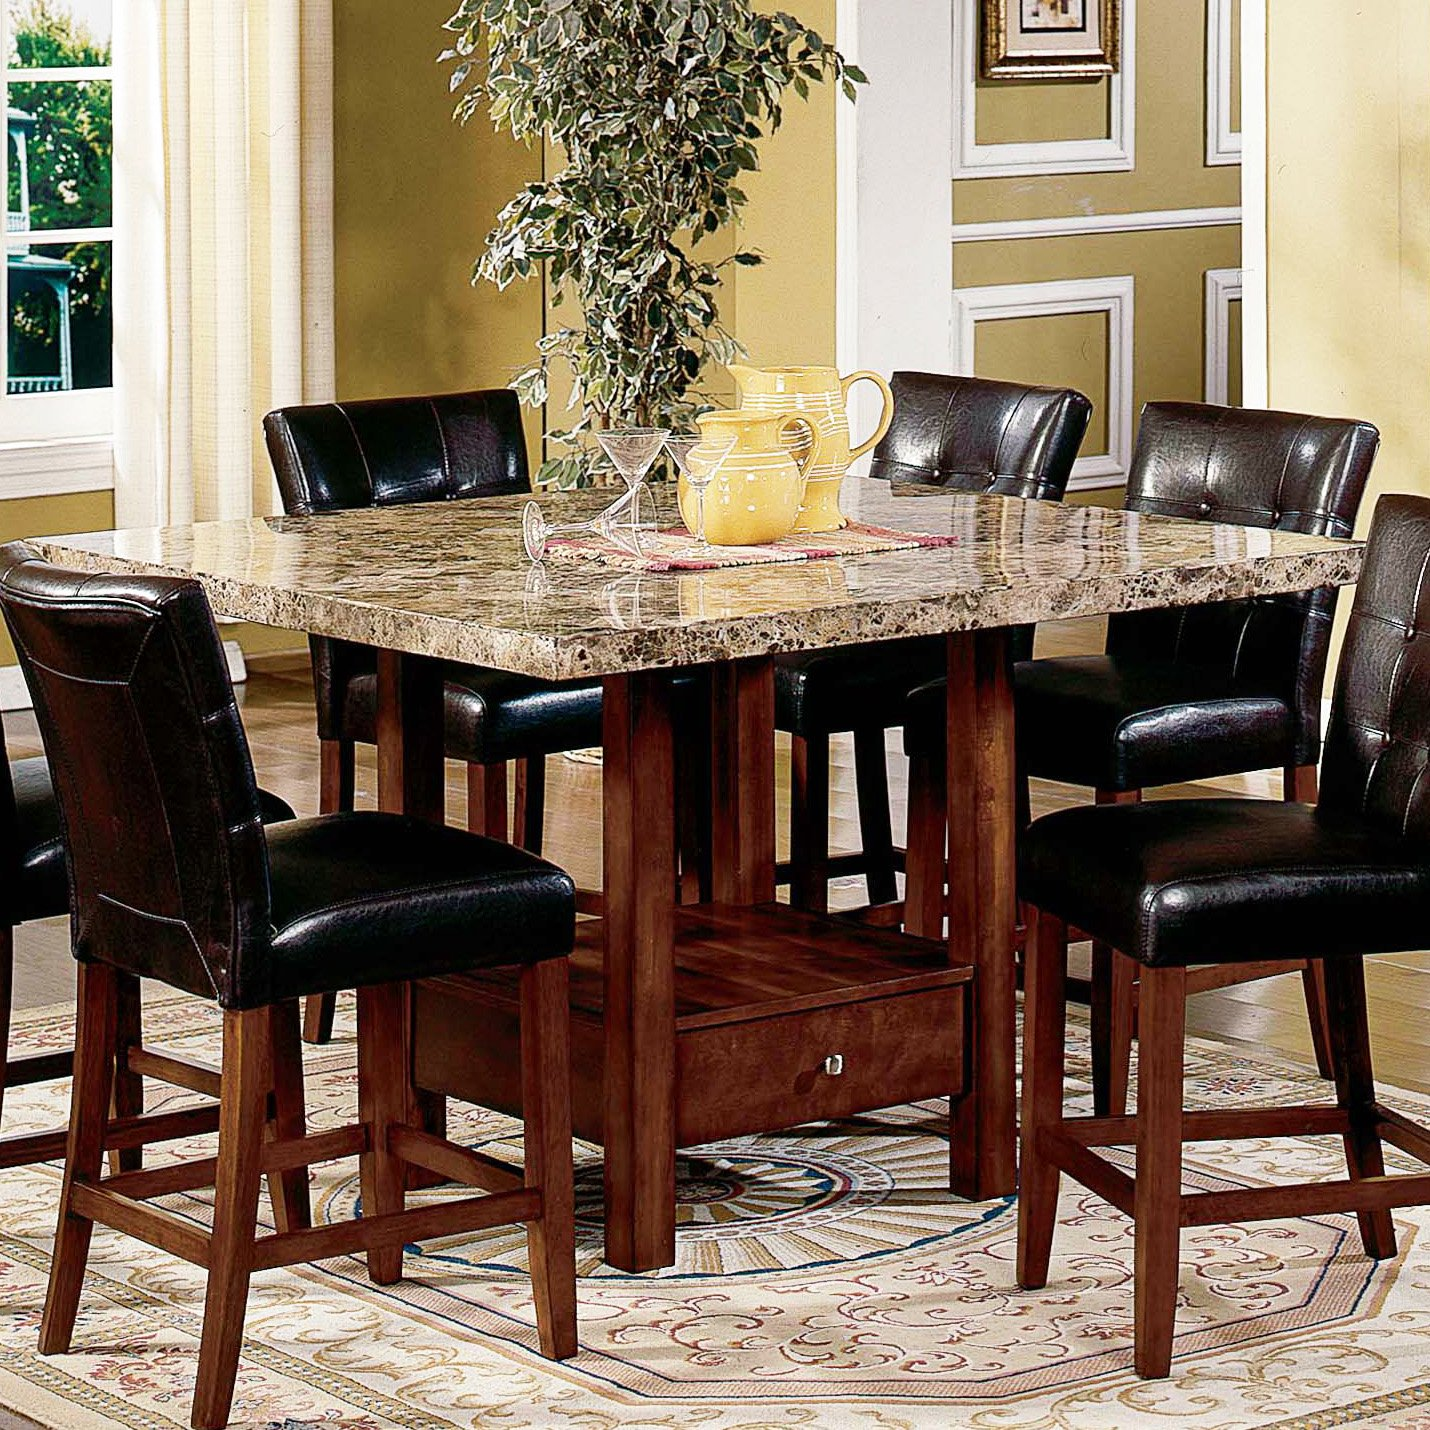 high table chair set french chairs top sets homesfeed